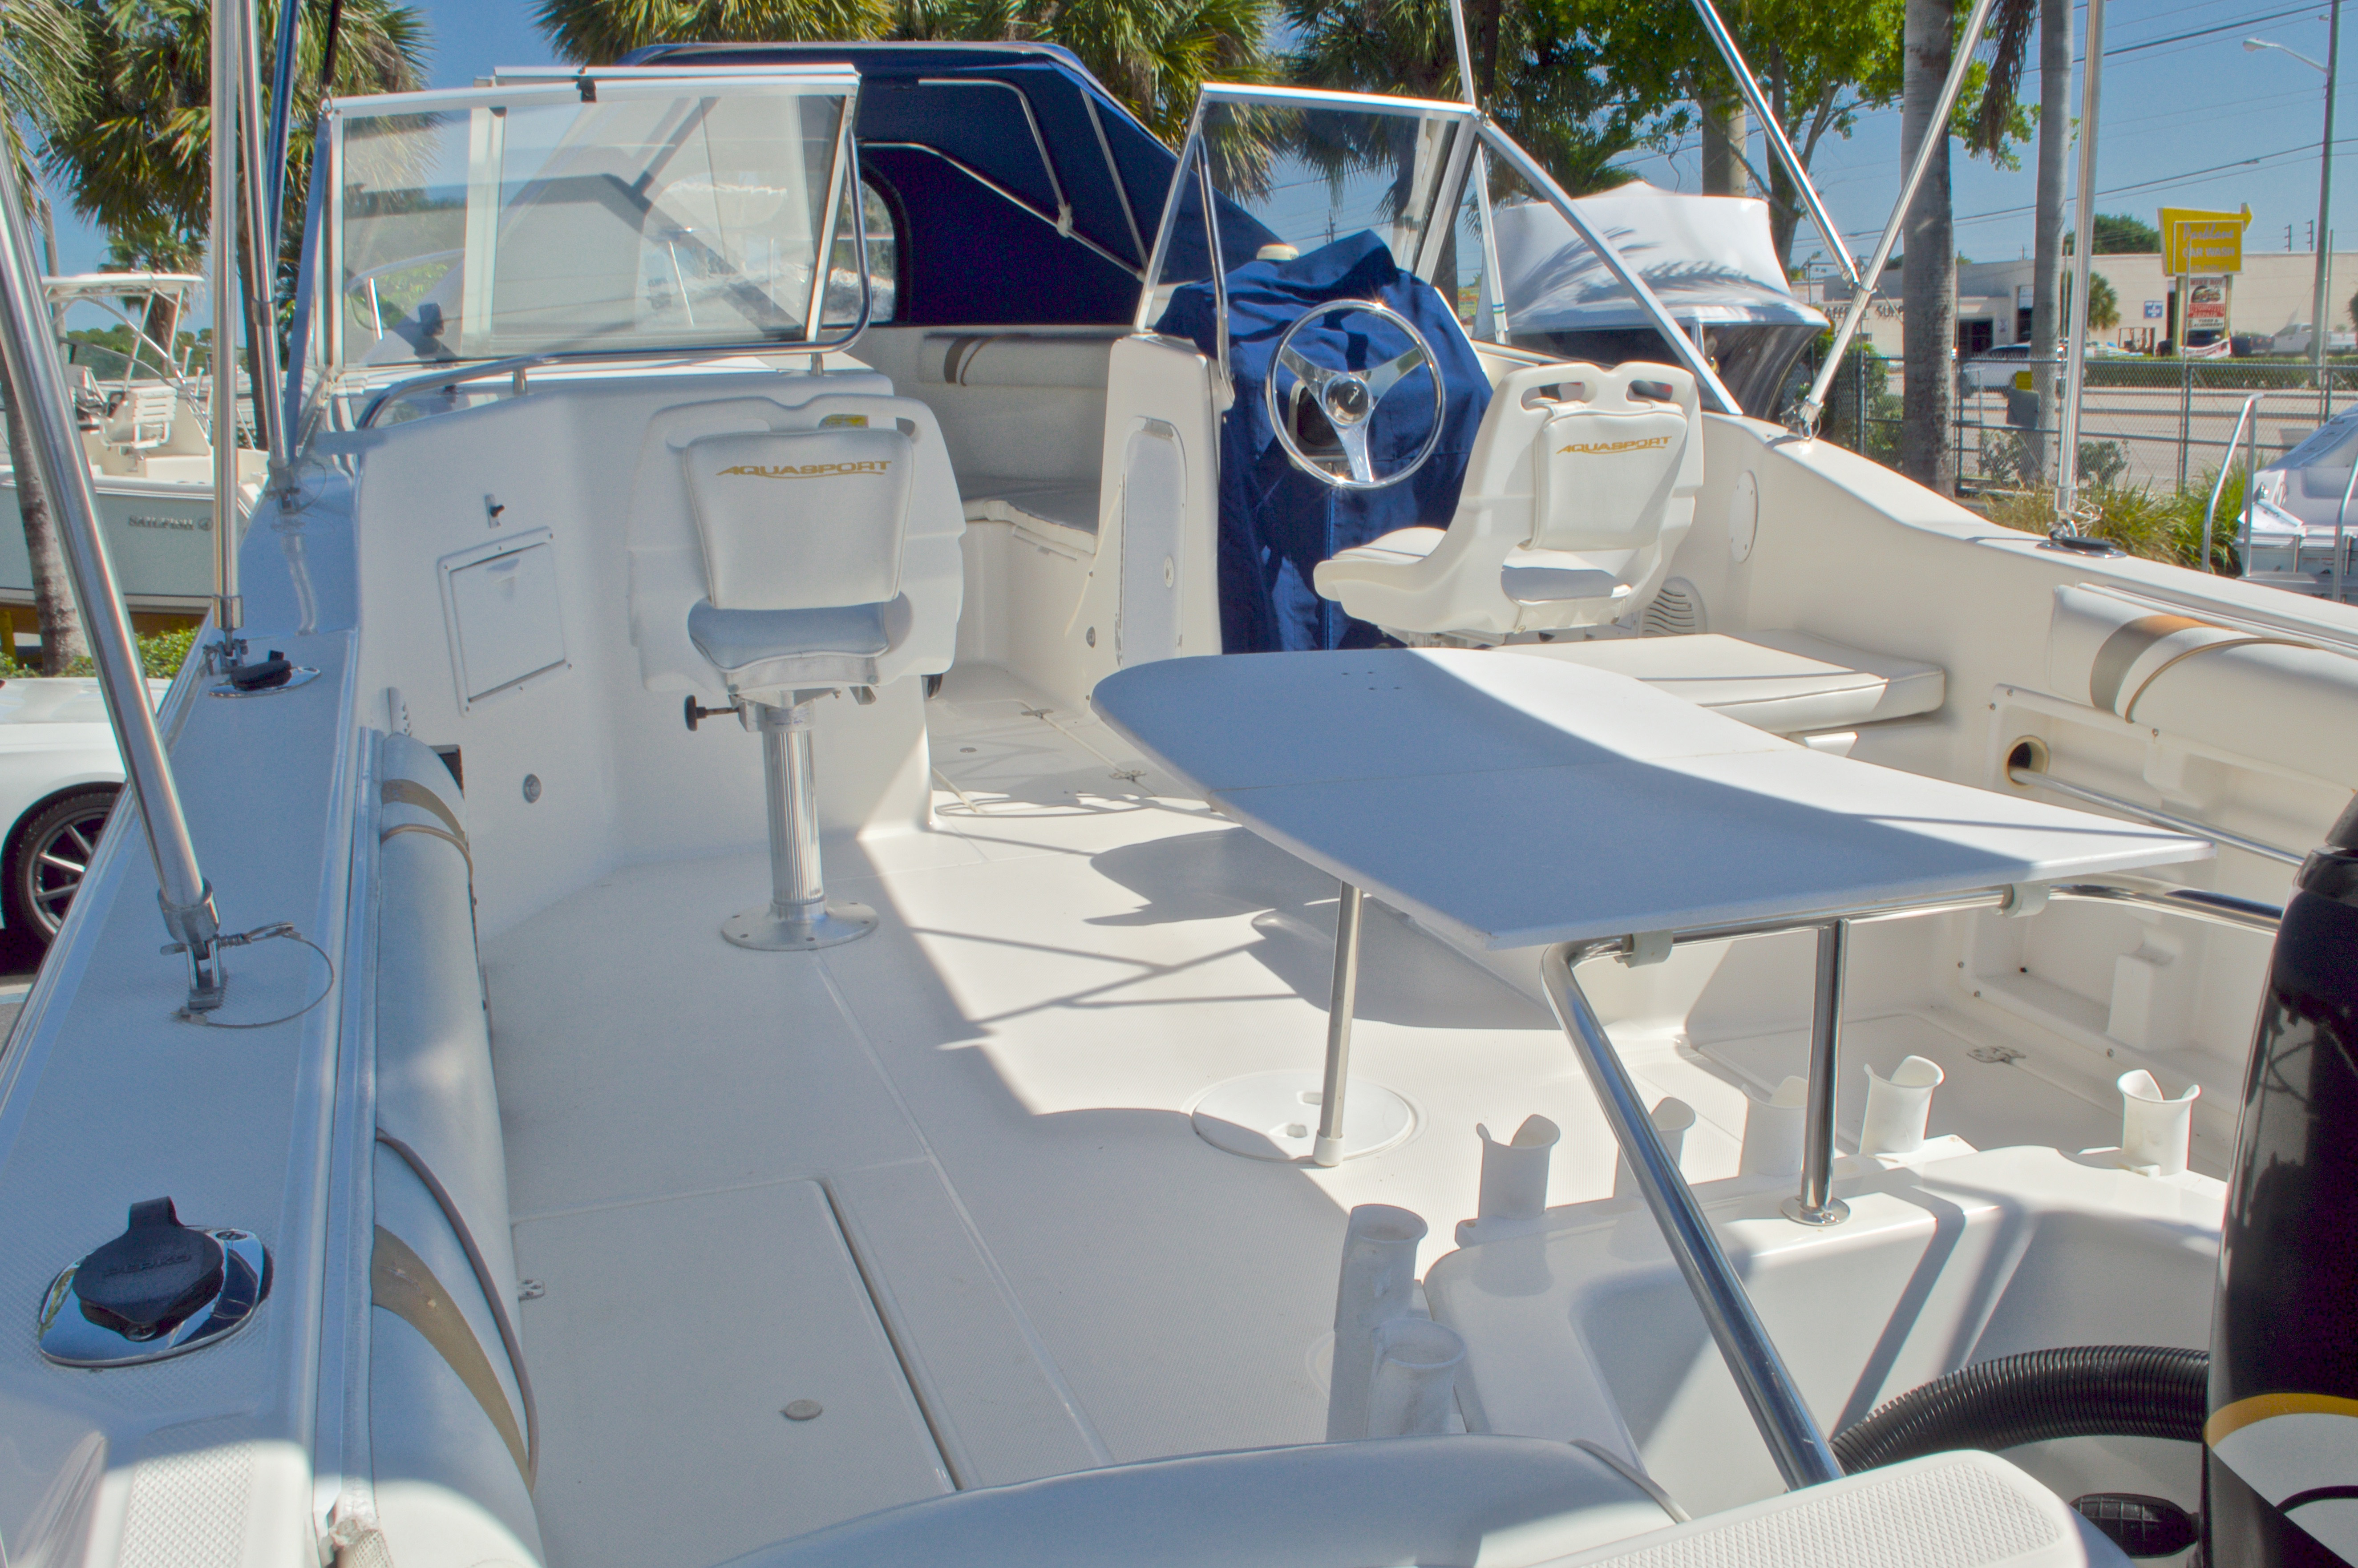 Thumbnail 12 for Used 2000 Aquasport 215 Osprey Sport DC boat for sale in West Palm Beach, FL